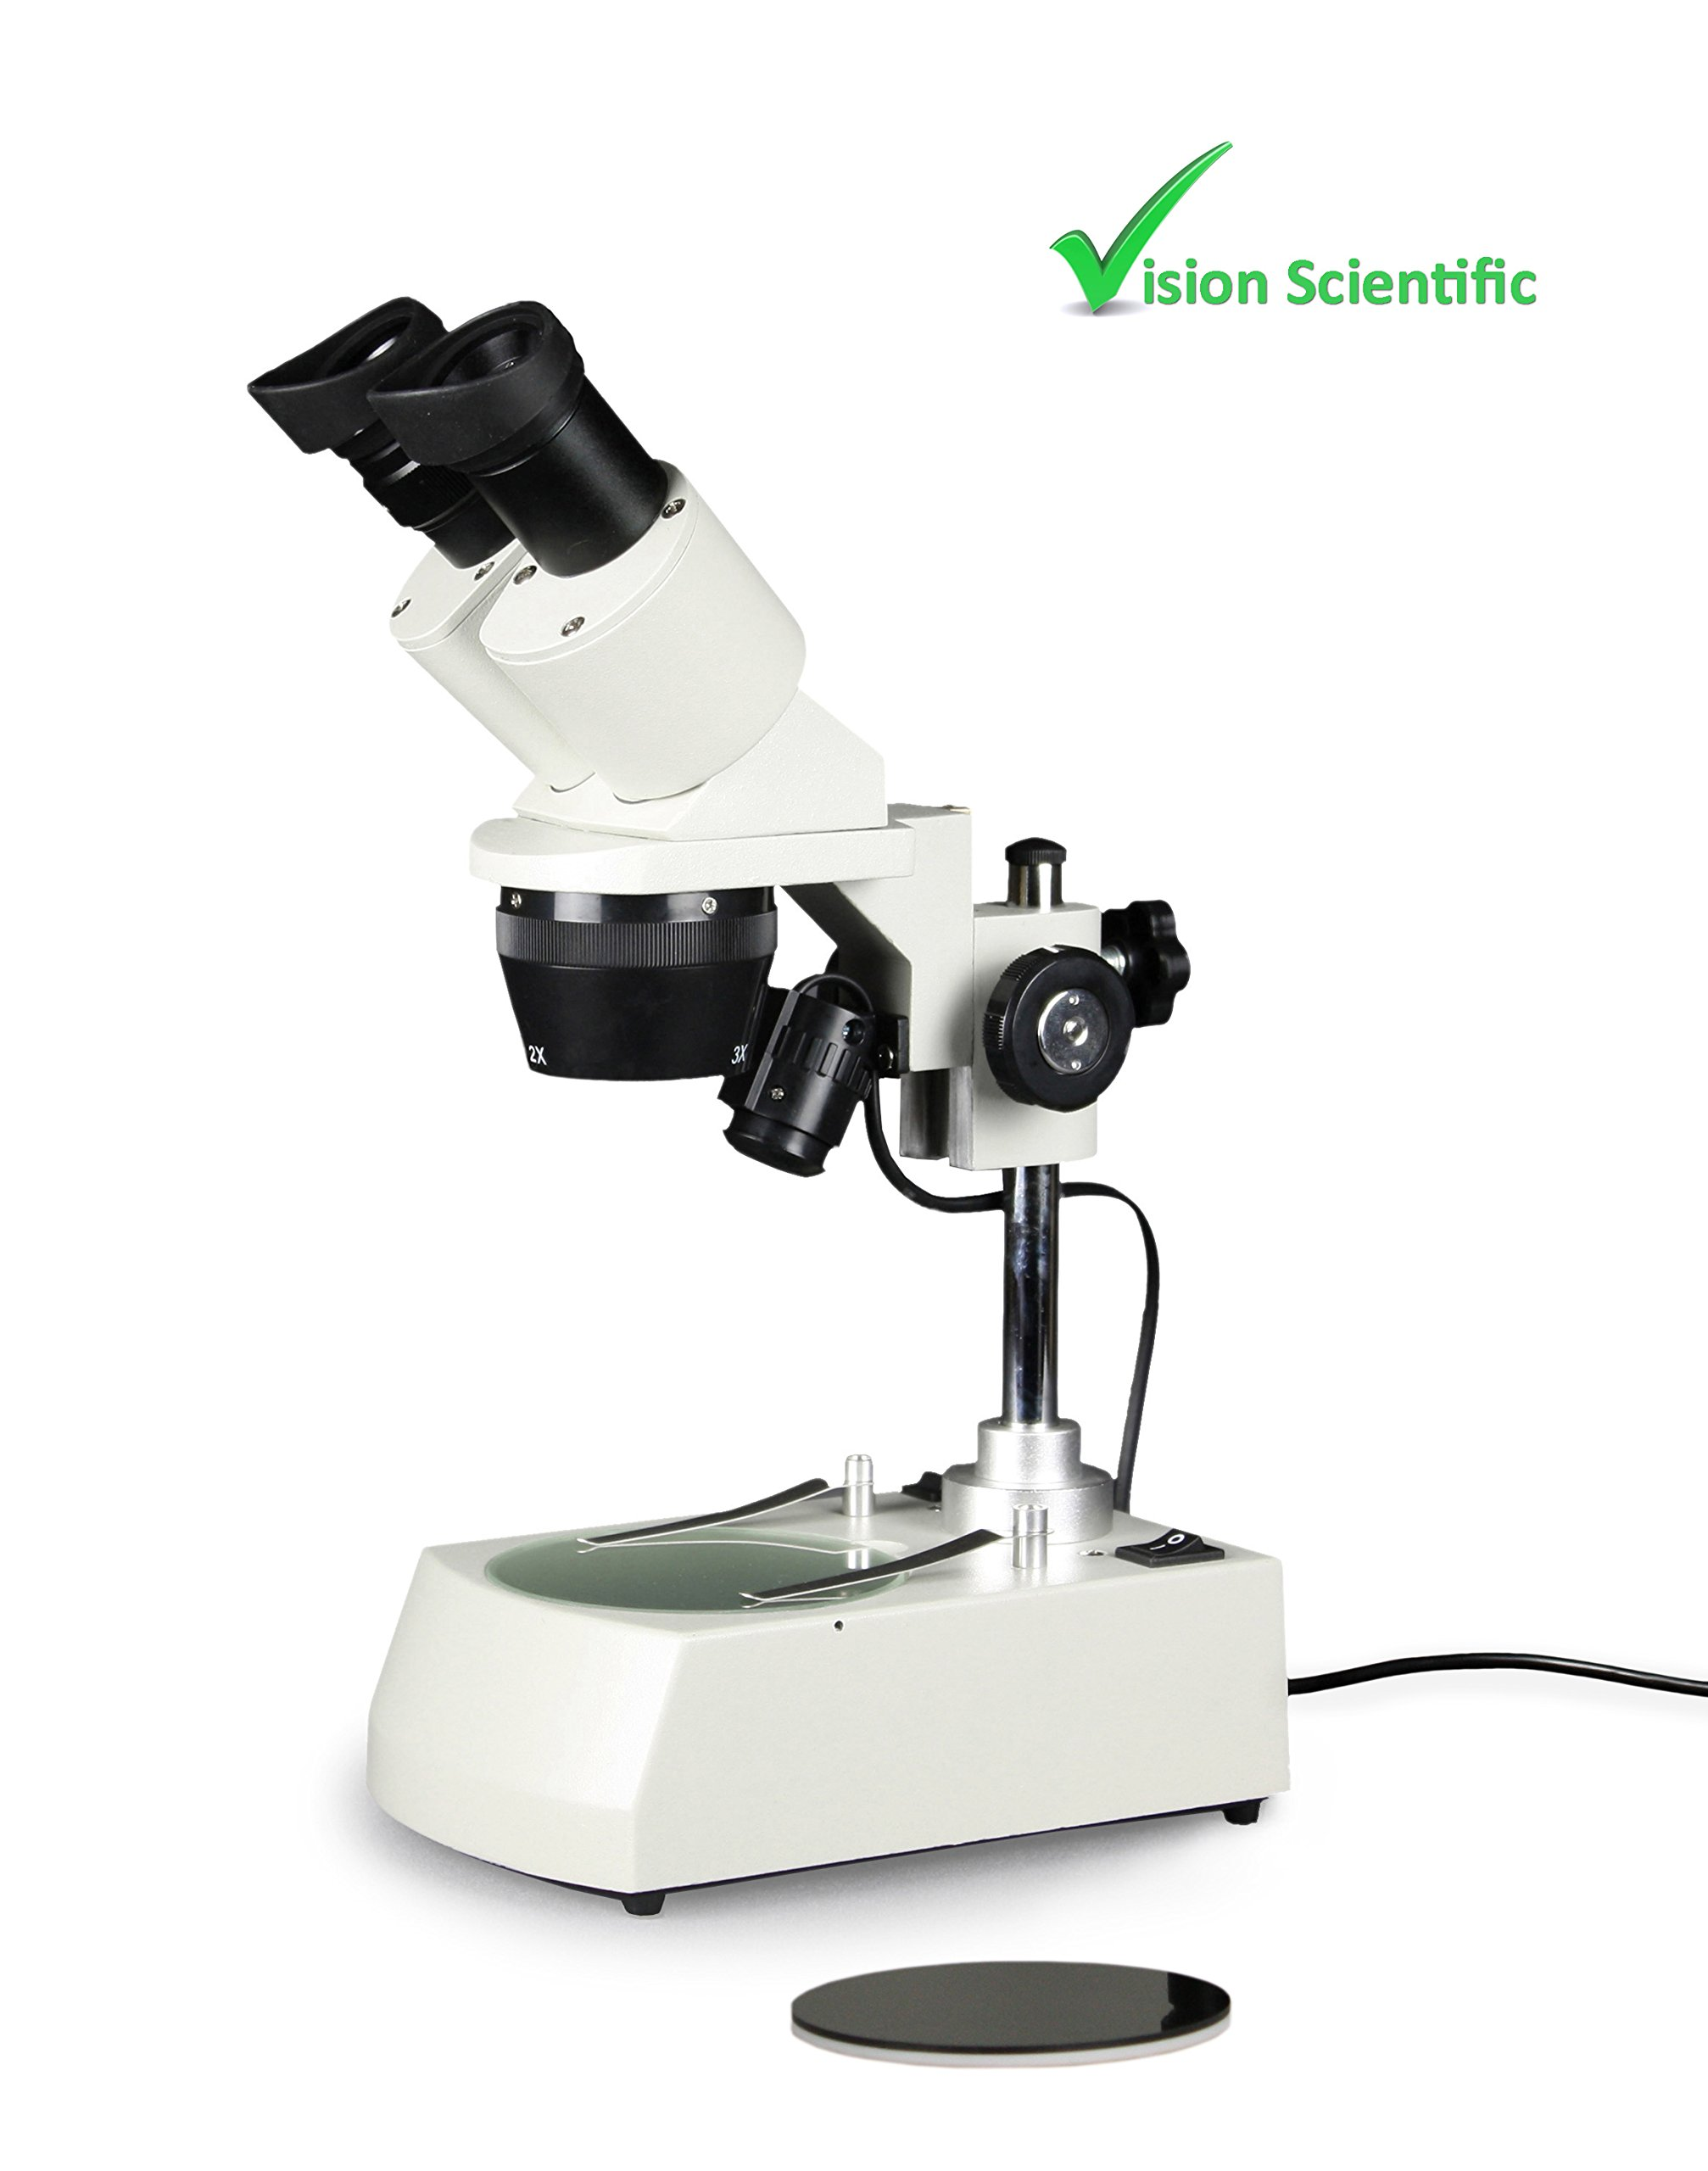 Vision Scientific VMS0002-LD2-24 Binocular Stereo Microscope, 2X and 4X Objective, Paired 10X WF Eyepiece, 20X - 40X Magnification, Top and Bottom LED Illumination, Post-Mounted Stand, 110V by Vision Scientific